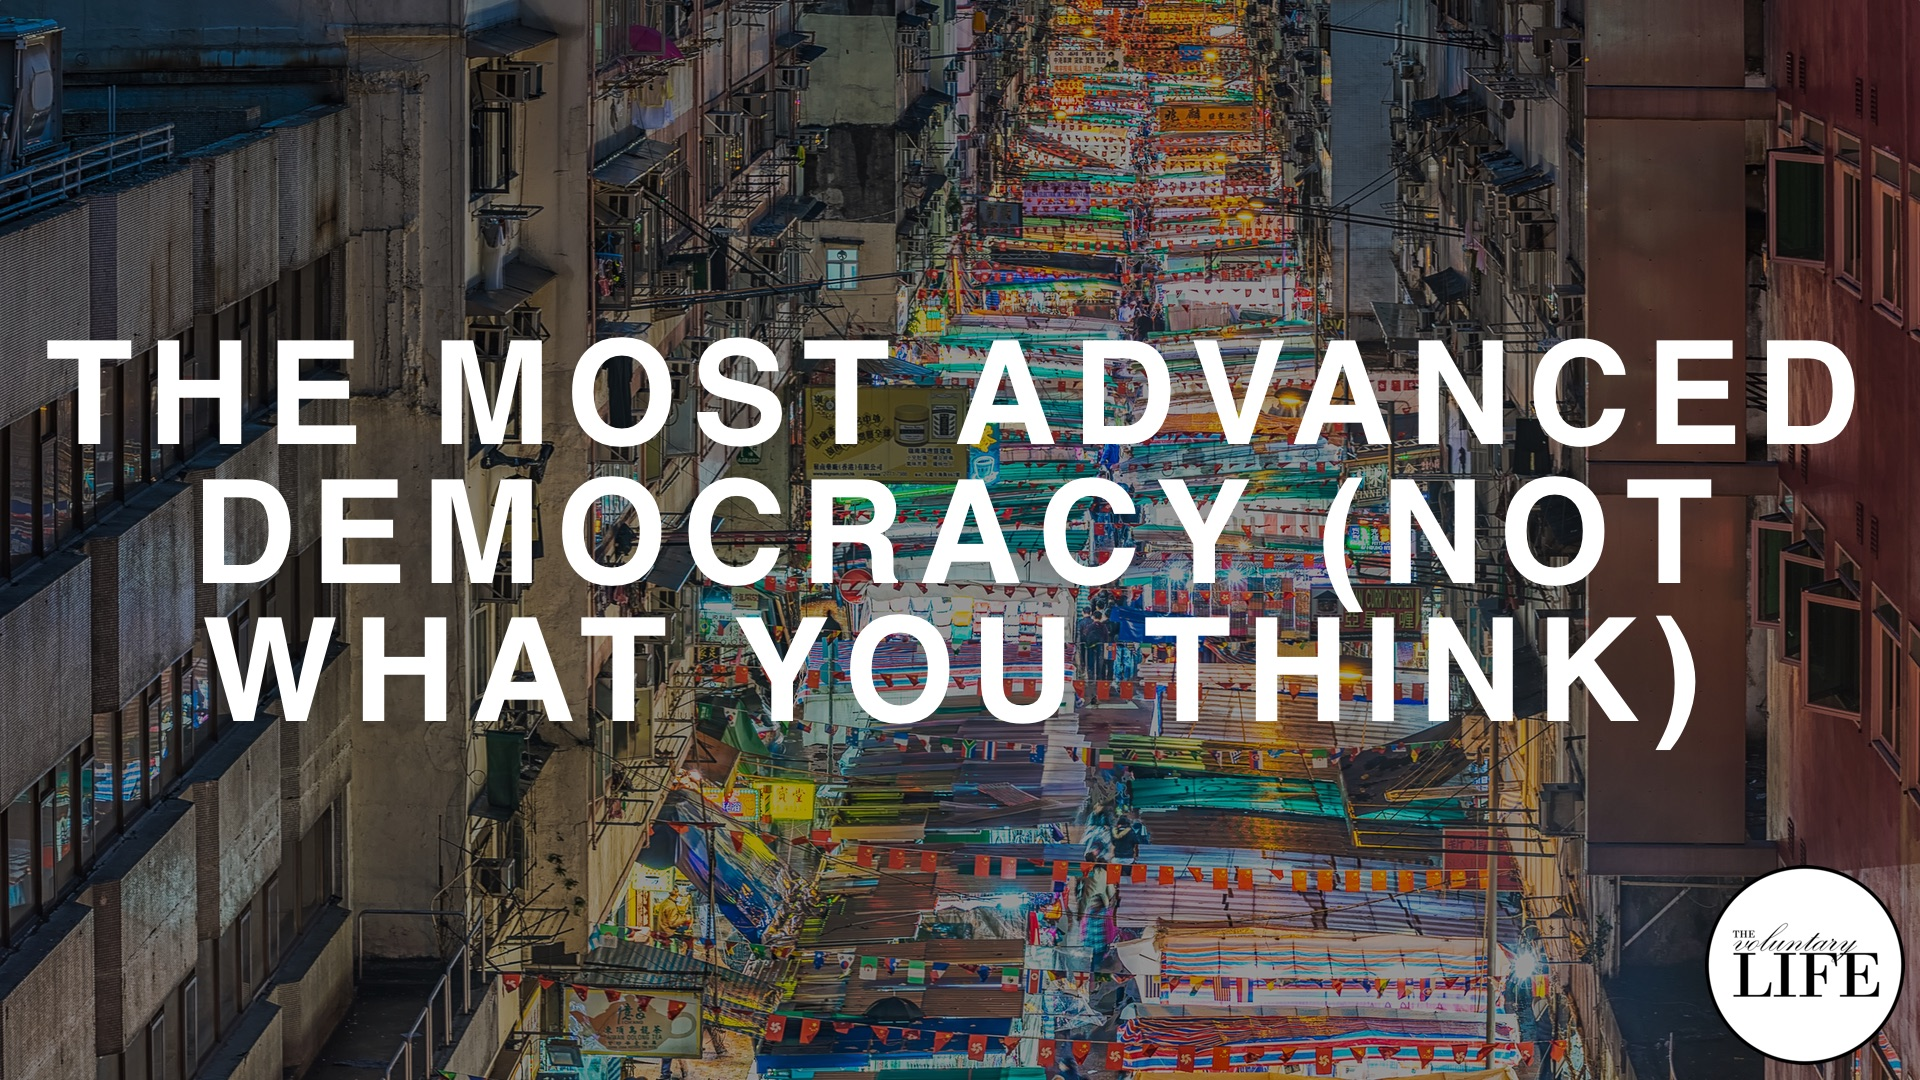 75 The Most Advanced Democracy On Earth (Probably Not What You Think)